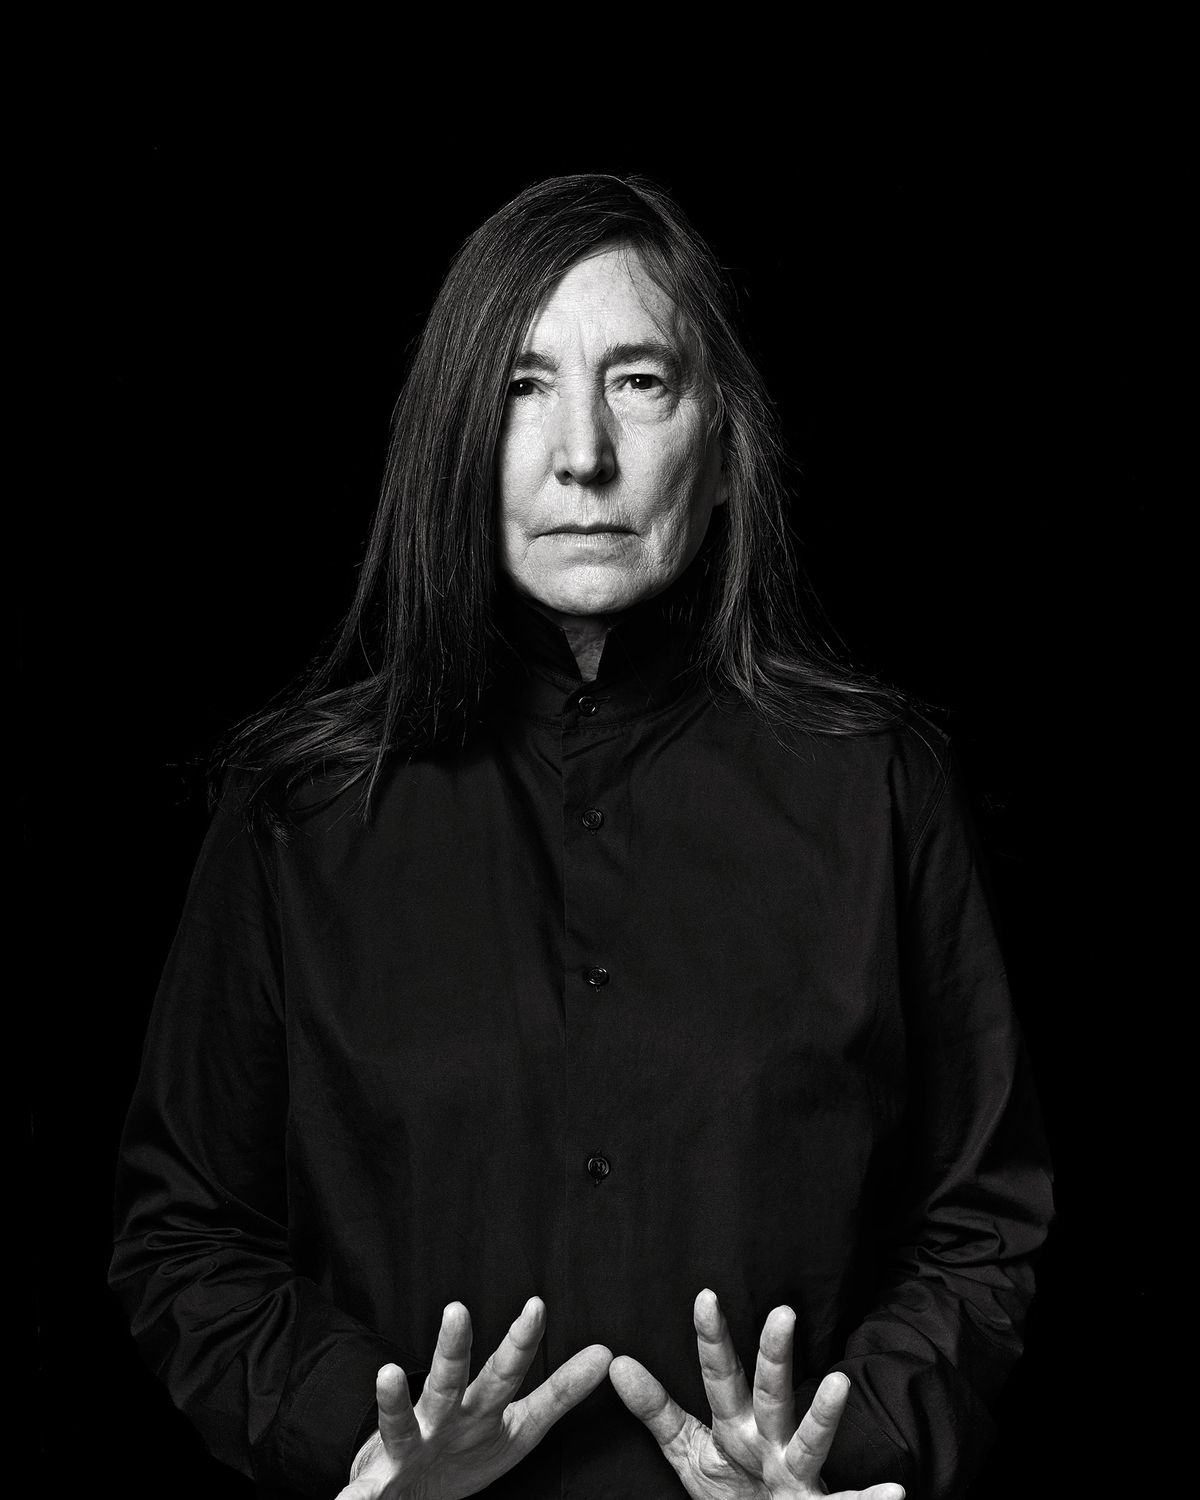 Jenny Holzer Made Good Things Out of Horror